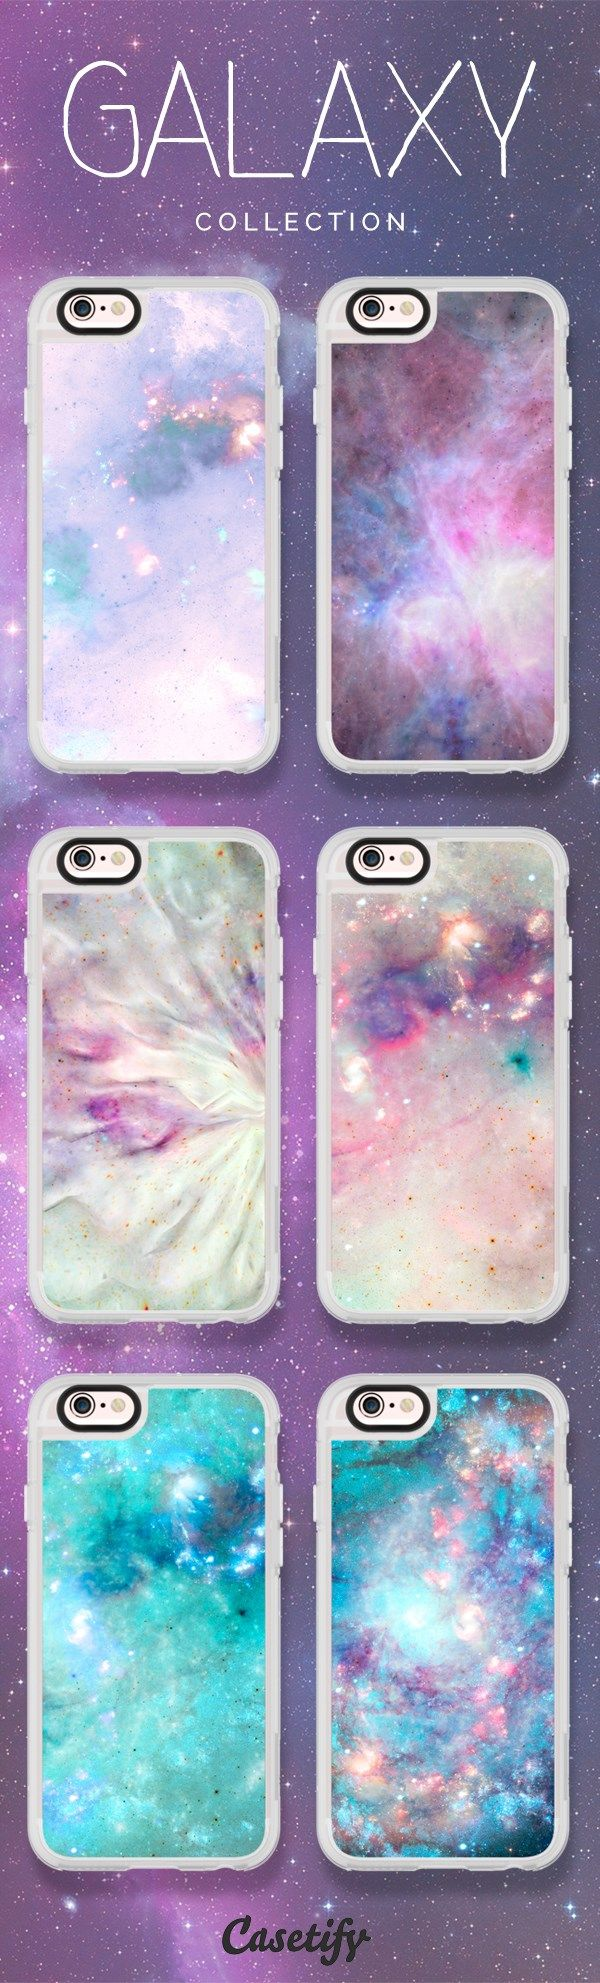 Take a look at these cases featuring galaxies designed by Barruf Art now! Explore it with the space illustrartion ! >>> www.casetify.com/...   Casetify